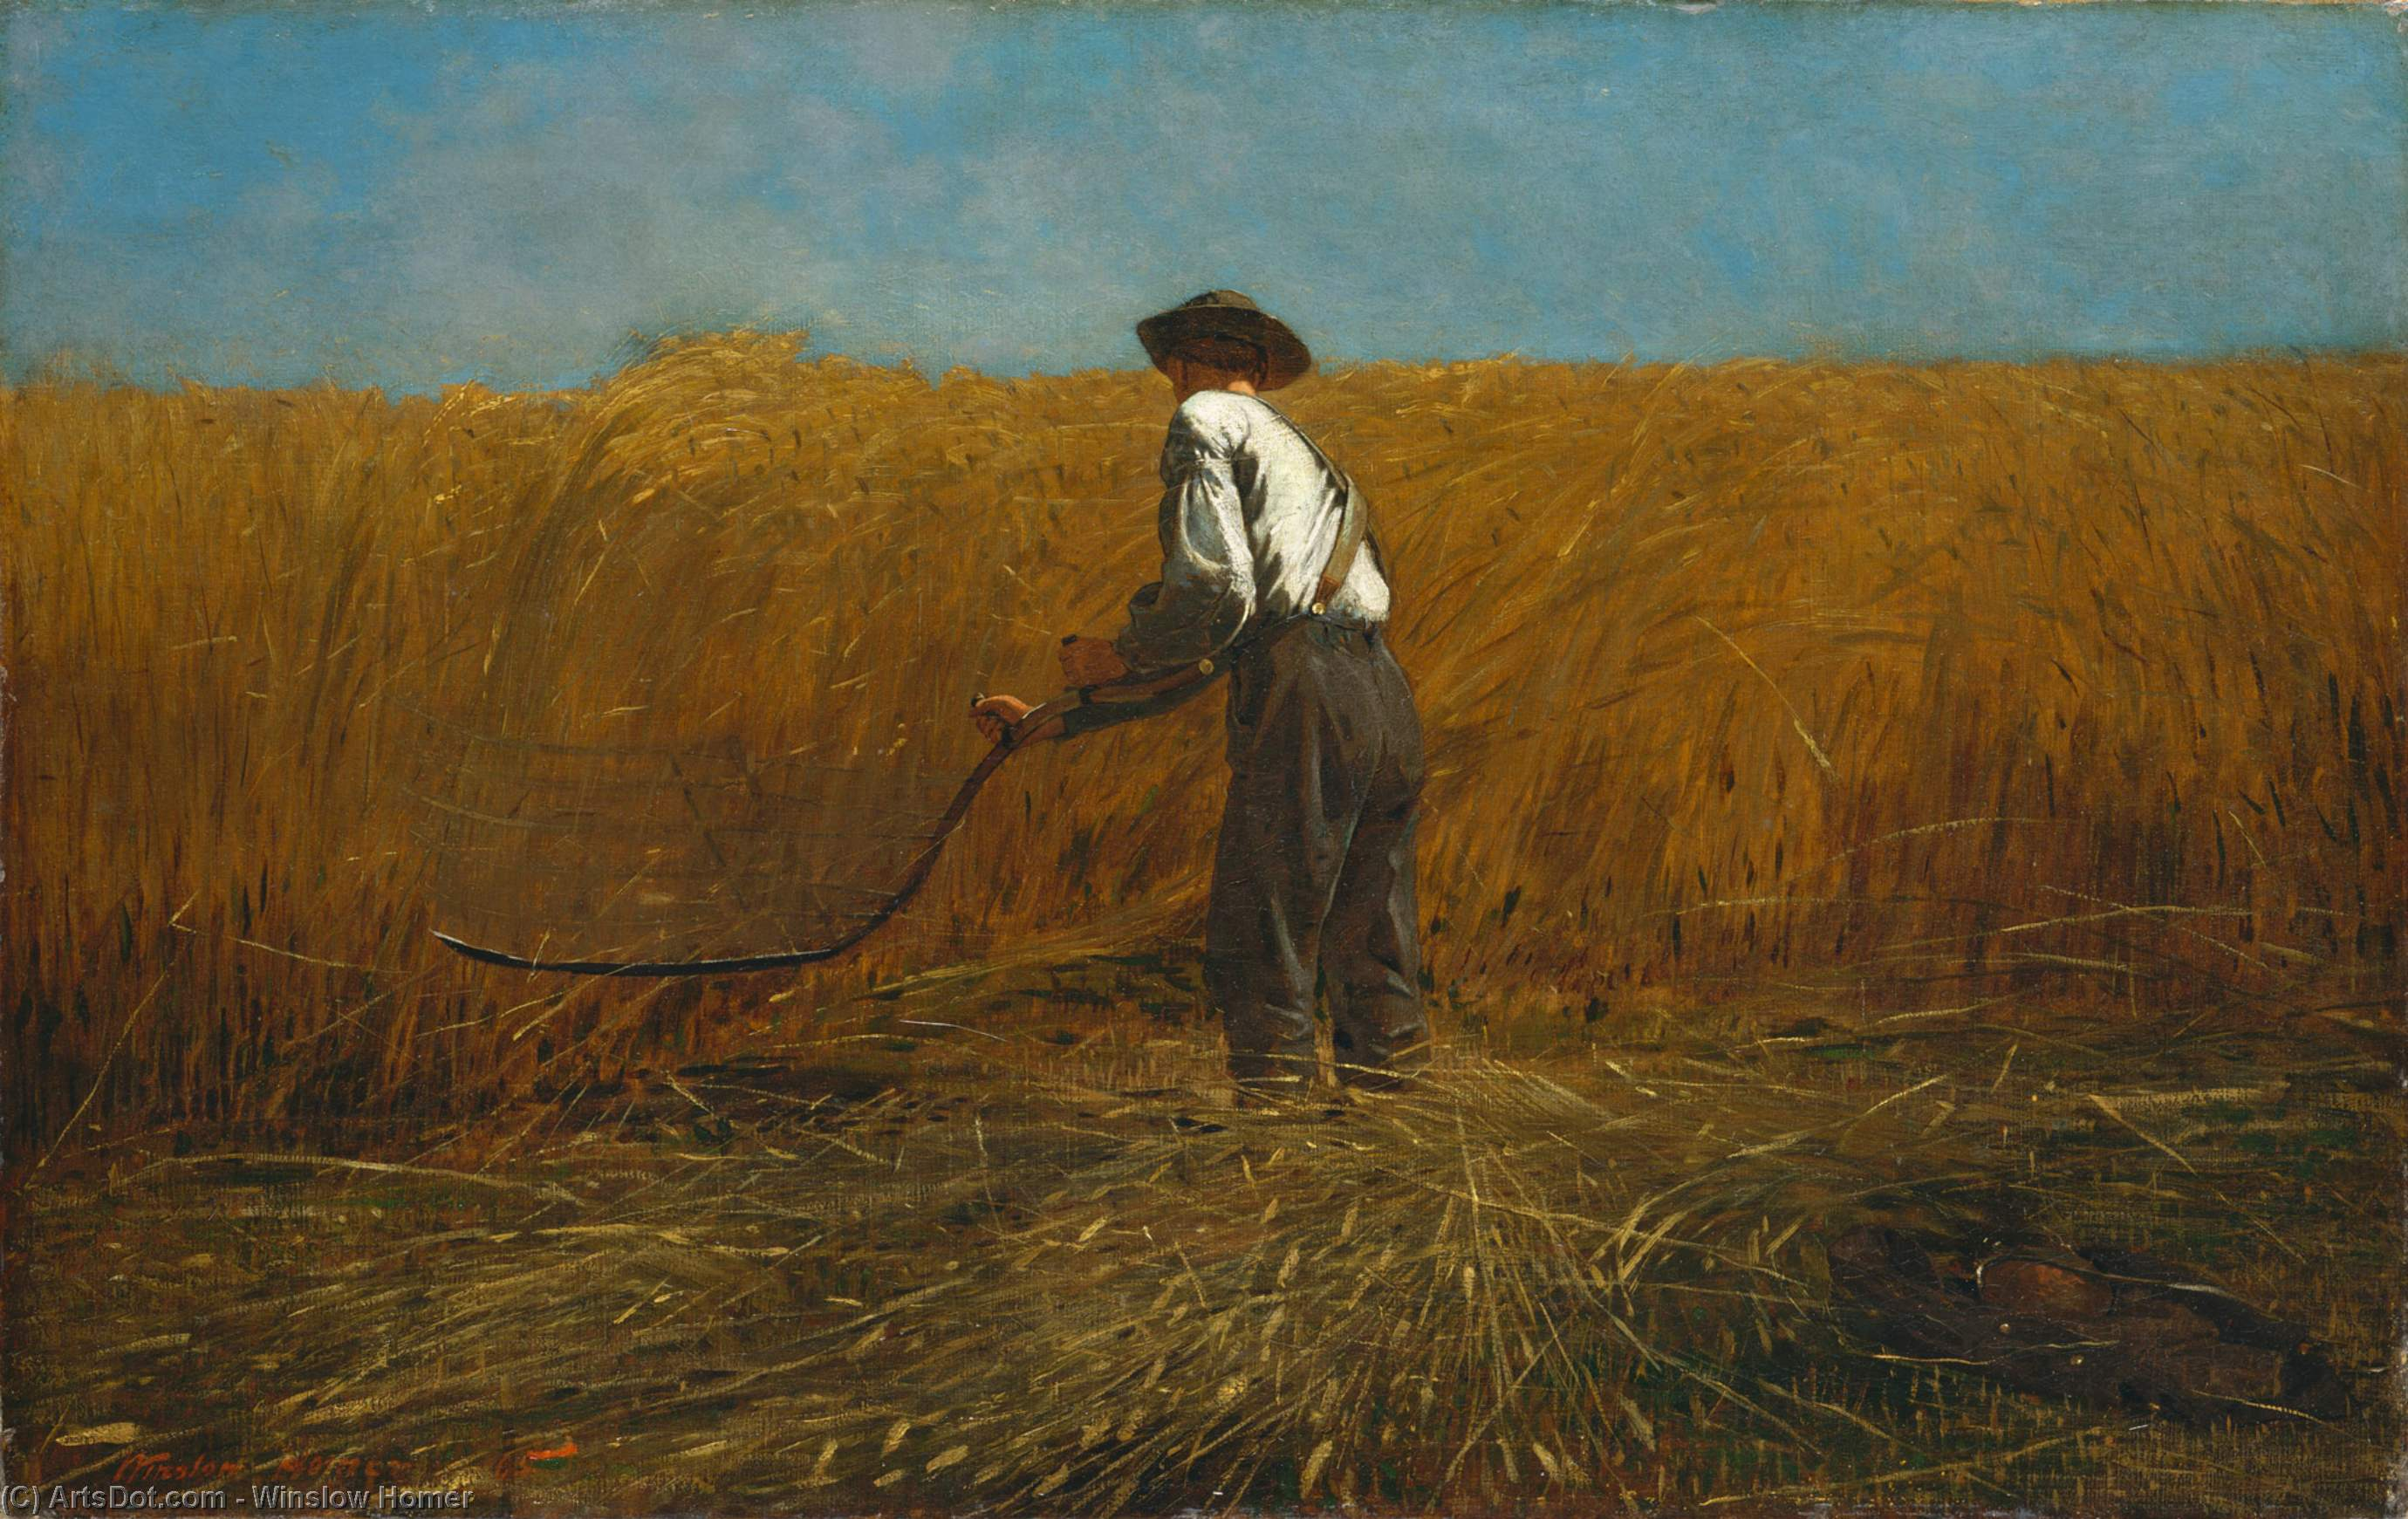 Wikioo.org - The Encyclopedia of Fine Arts - Painting, Artwork by Winslow Homer - The Veteran in a New Field